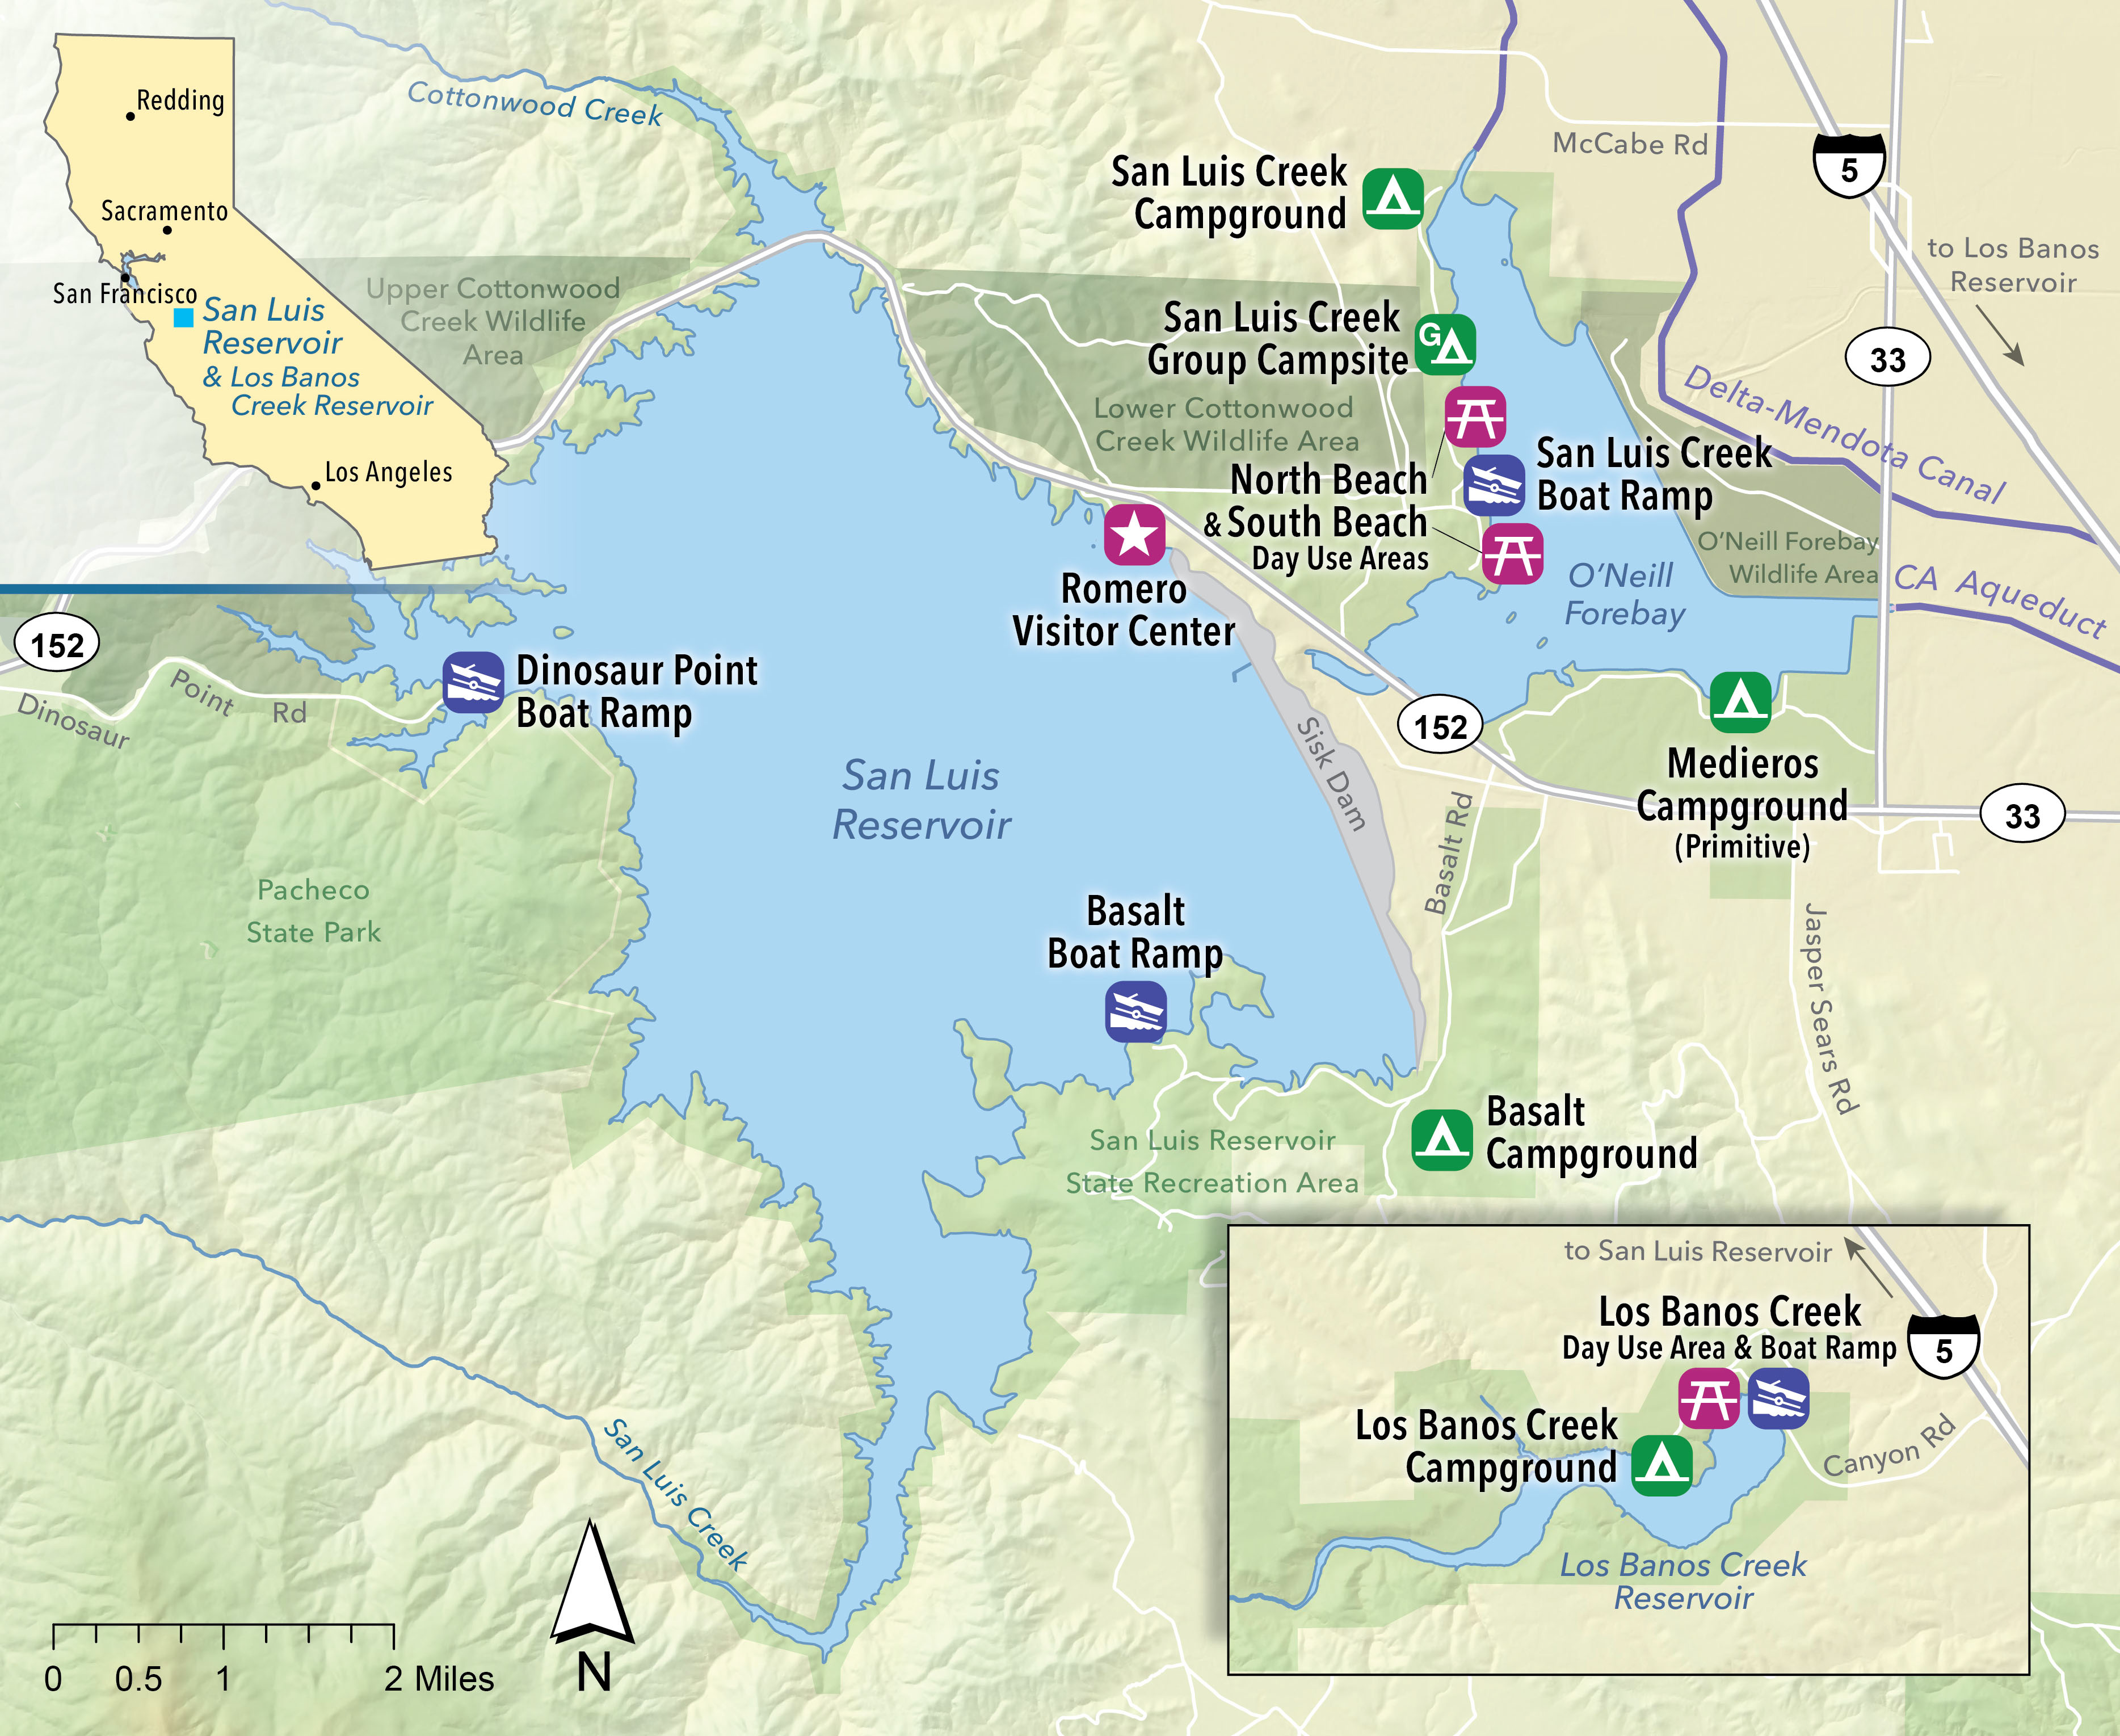 San Luis Recreation map showing visitor center, campgrounds, picnic areas, boat launch, and other areas. If you need further assistance call (916) 653-5791 or email accessibility@water.ca.gov